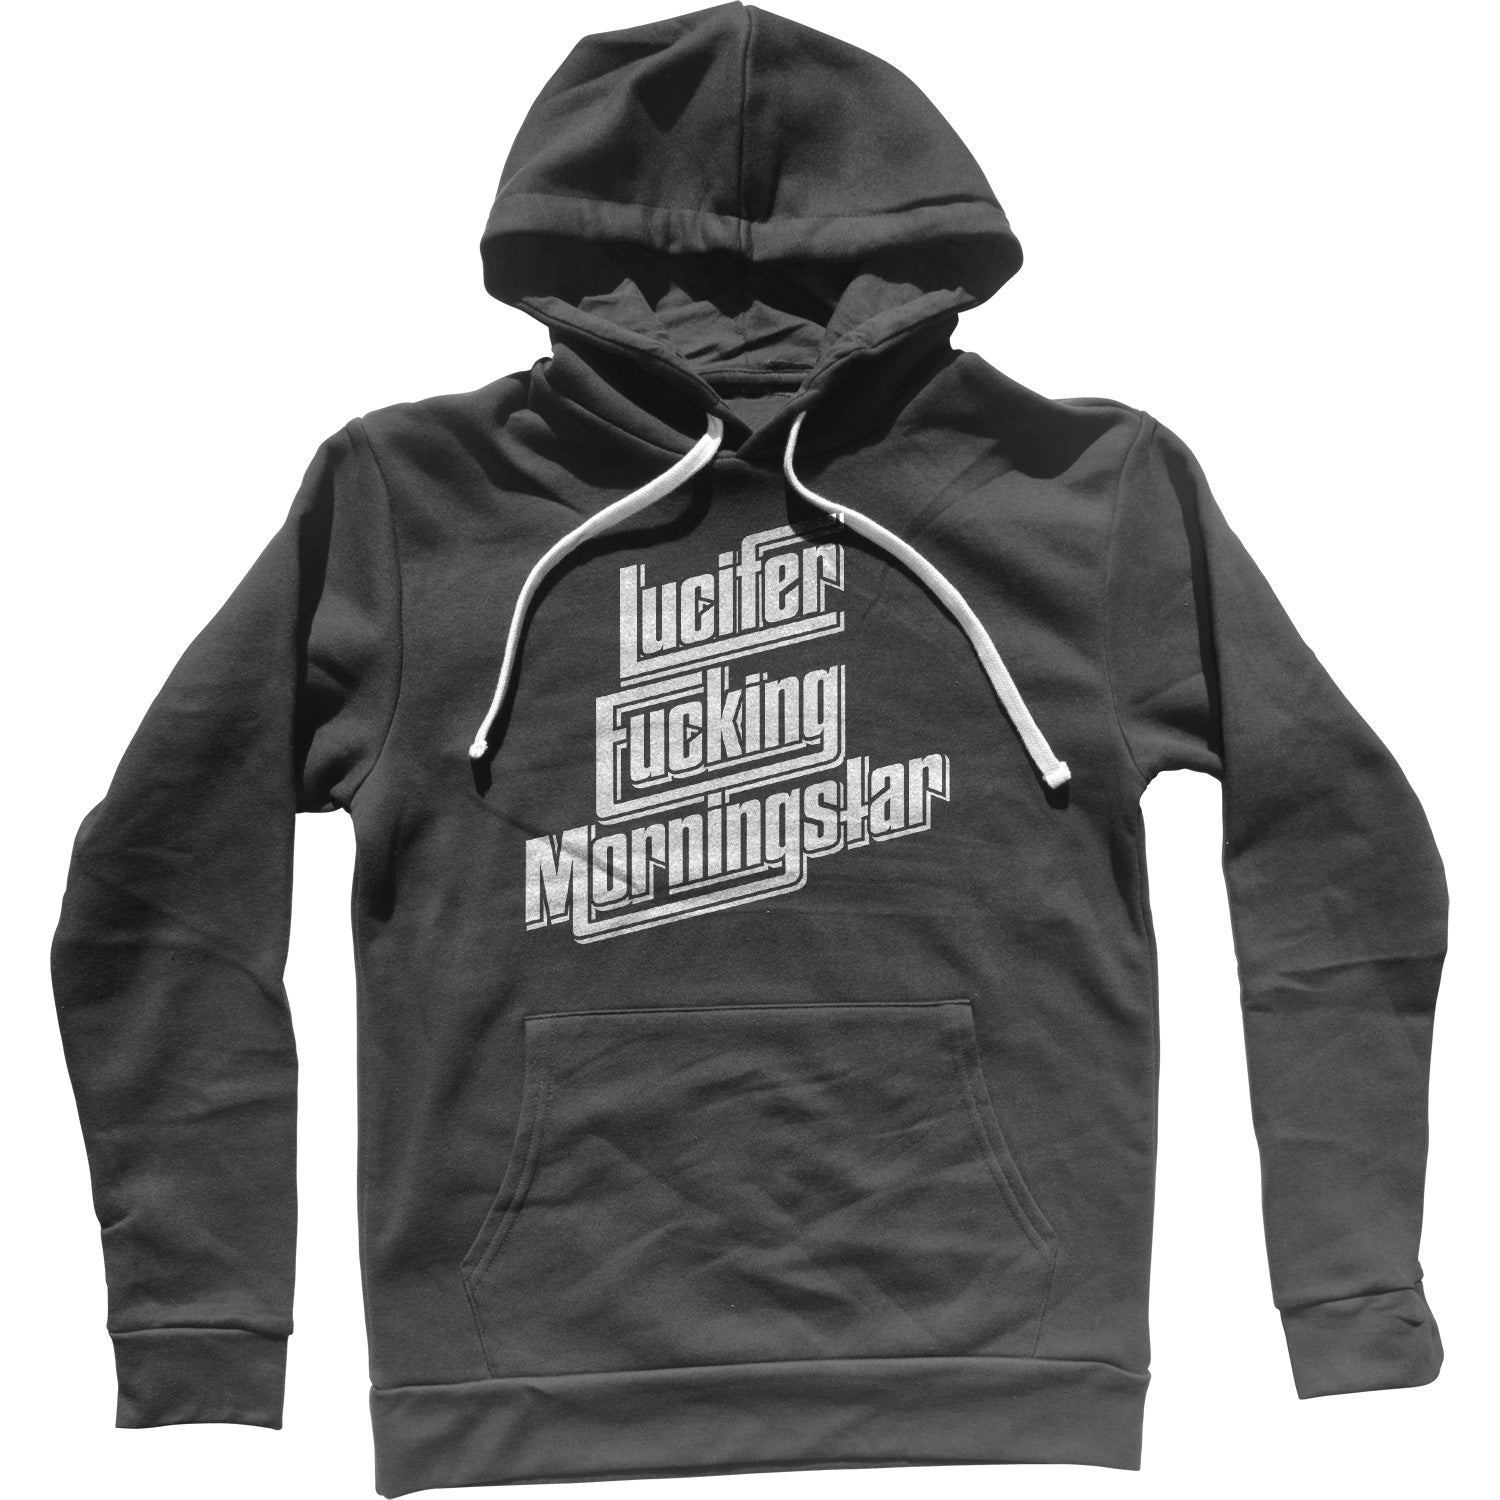 Lucifer Fucking Morningstar Unisex Hoodie